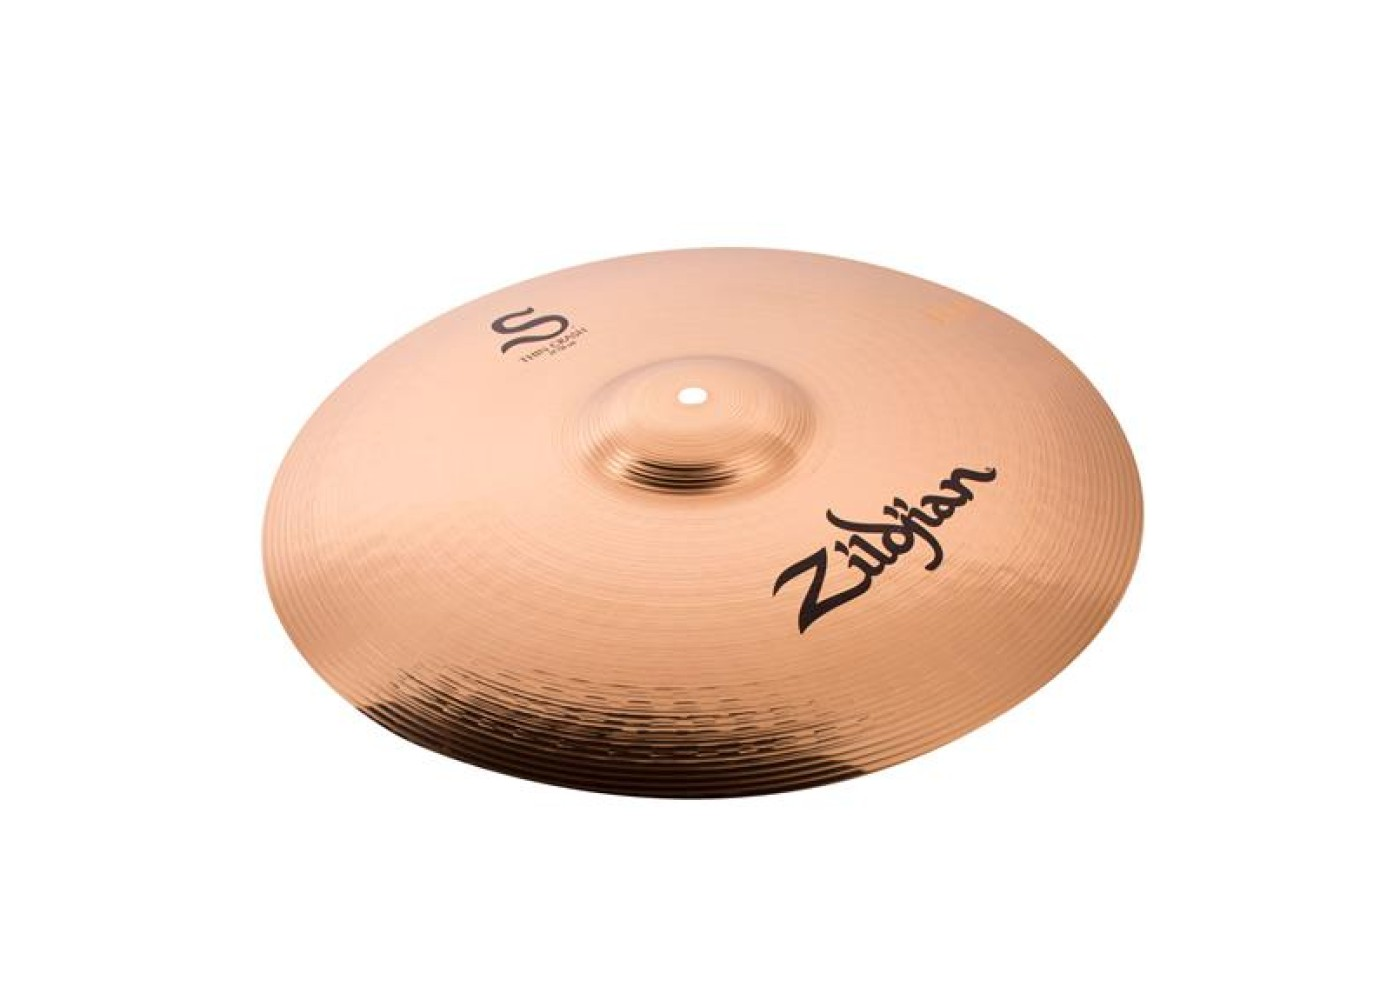 shop for zildjian s14tc 14 inch s series thin crash cymbal at world music supply for best price. Black Bedroom Furniture Sets. Home Design Ideas